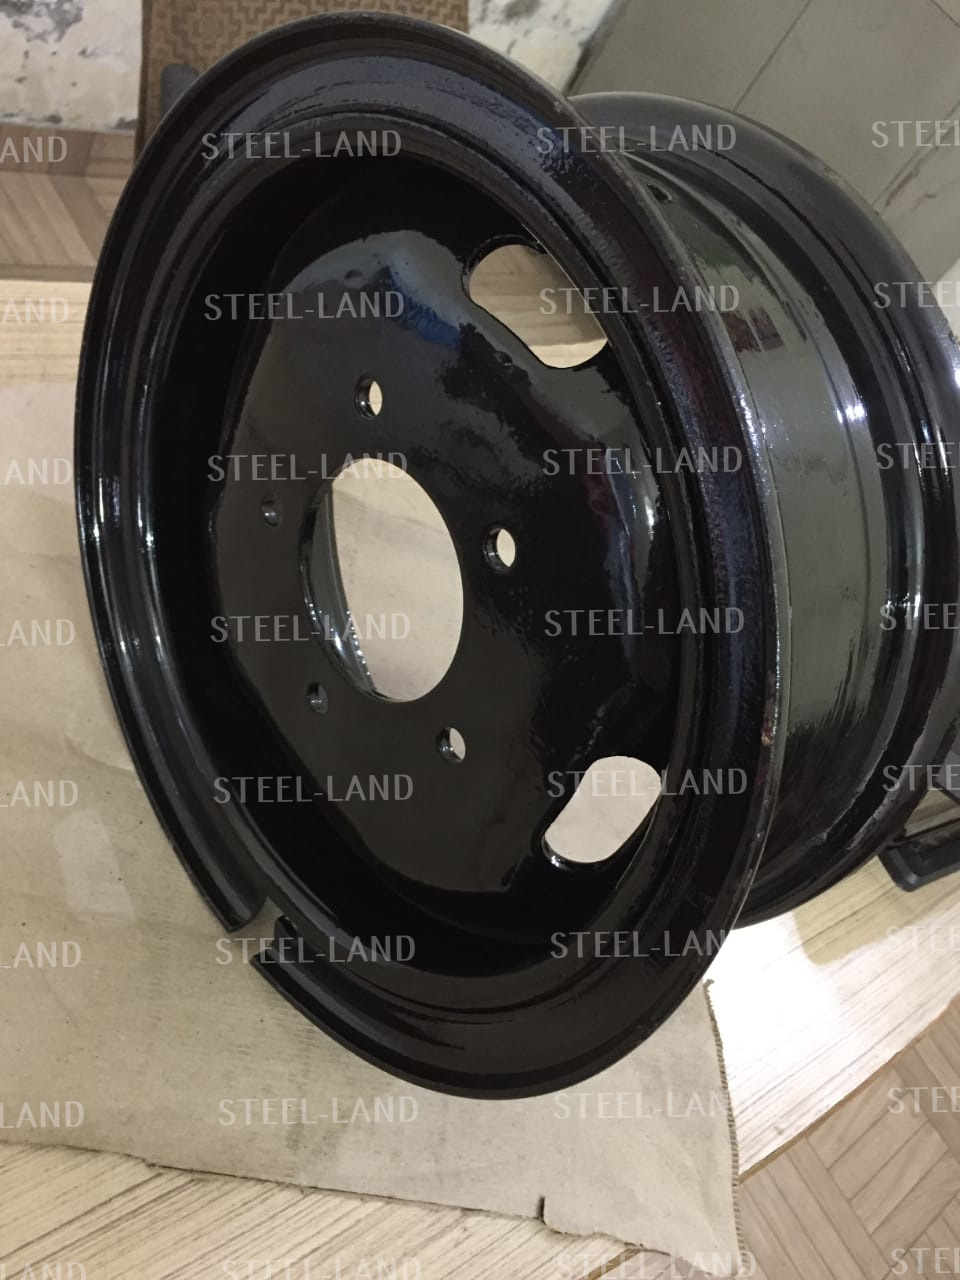 STEEL LAND Steellandindustries.com 77.00x15 7x15 5 hole wheel rim bolero pickup.jpg